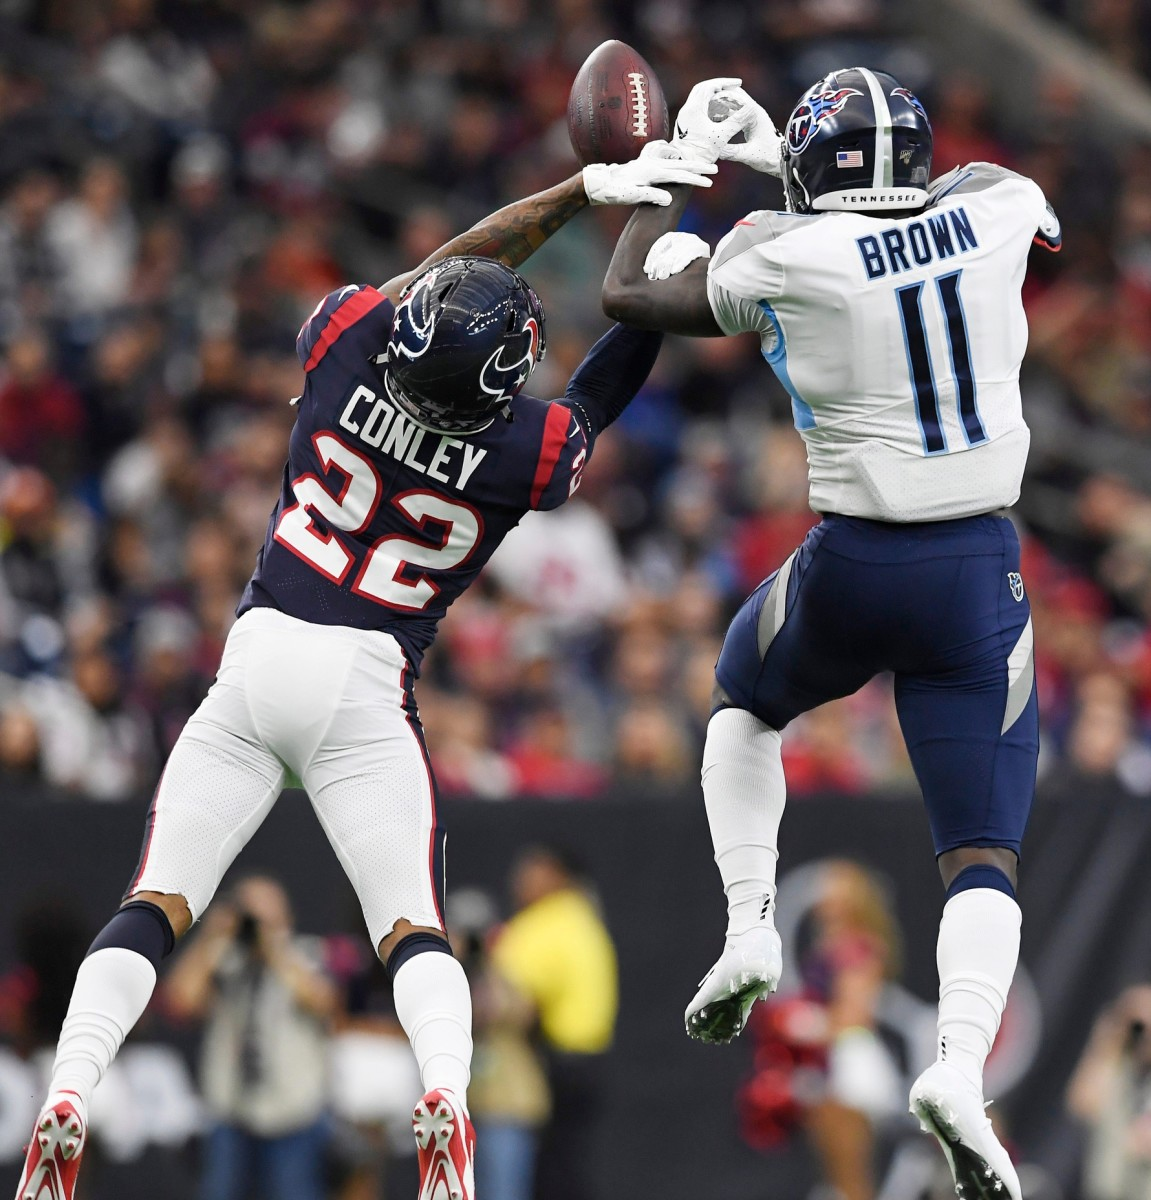 Houston Texans cornerback Gareon Conley (22) breaks up a pass intended for Tennessee Titans wide receiver A.J. Brown (11)© George Walker IV / Tennessean.com, Nashville Tennessean via Imagn Content Services, LLC